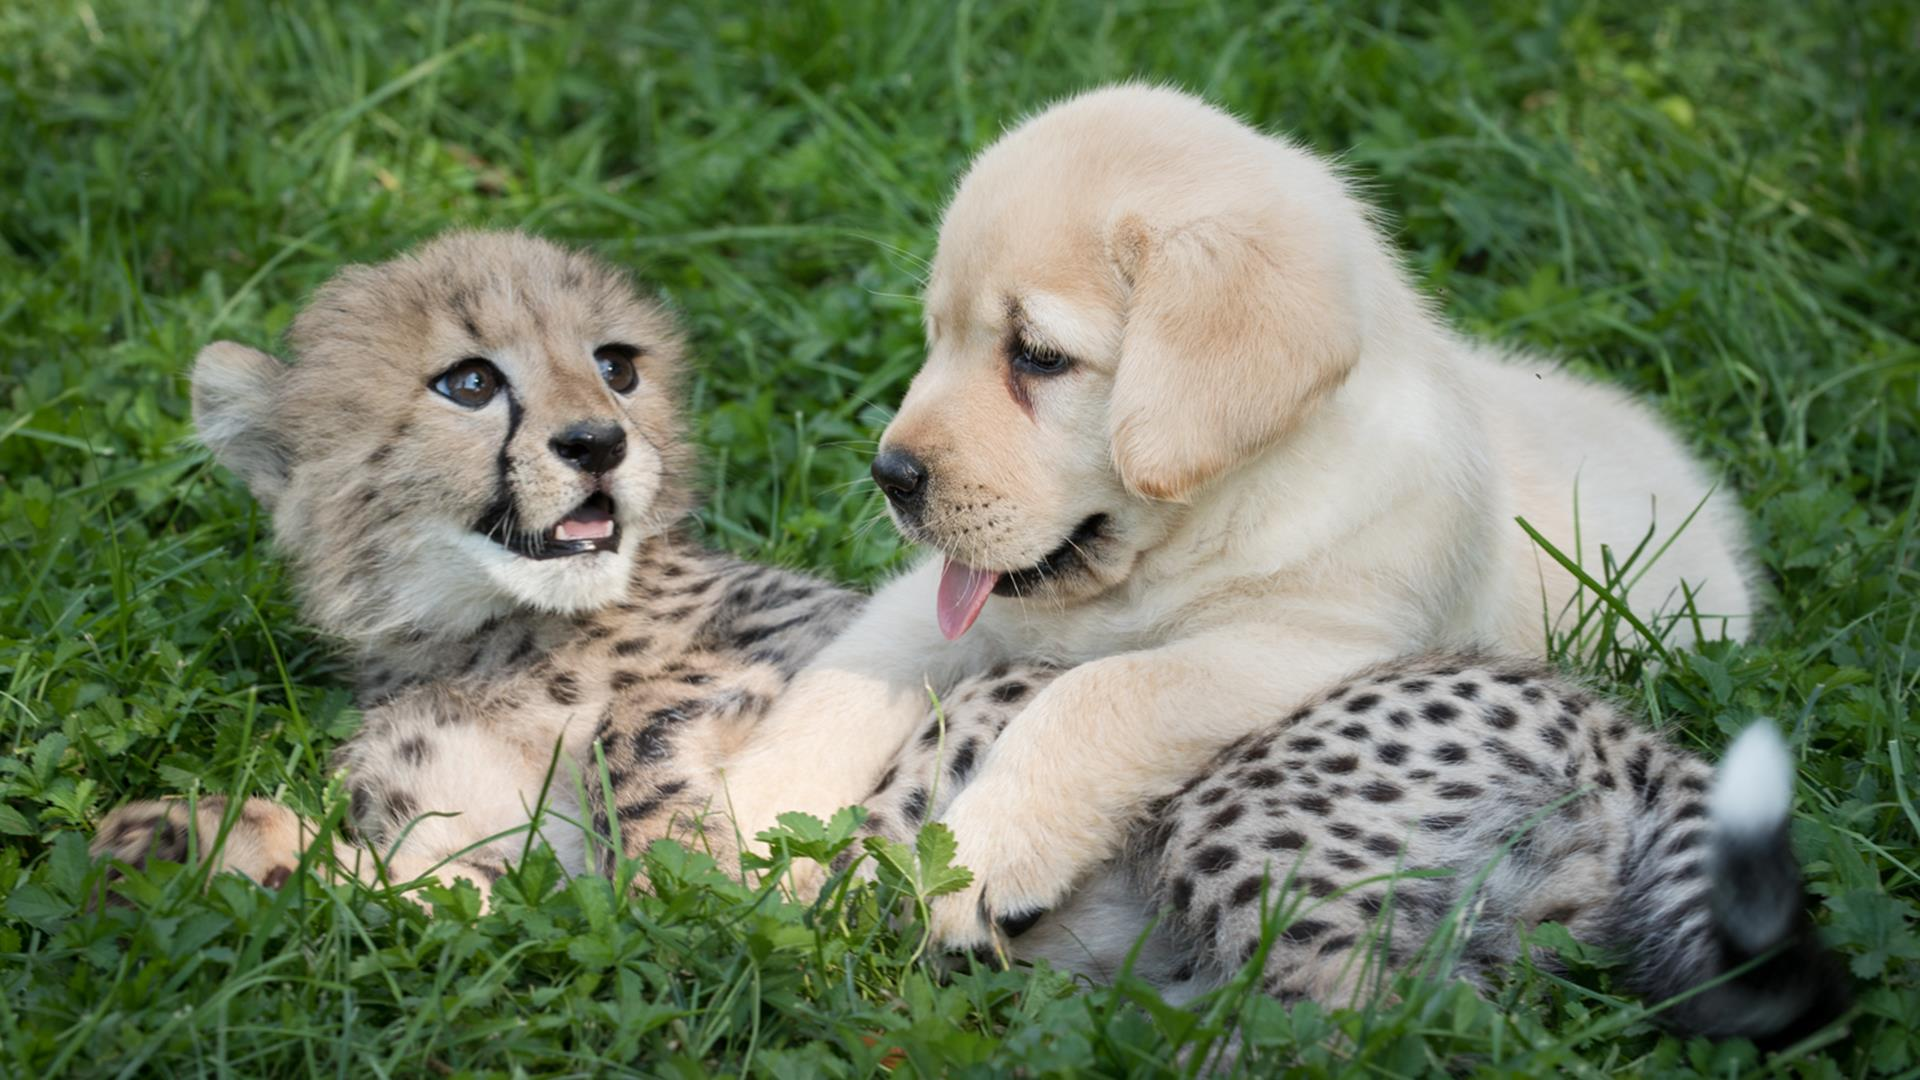 This adorable puppy and cheetah love hanging out TODAY